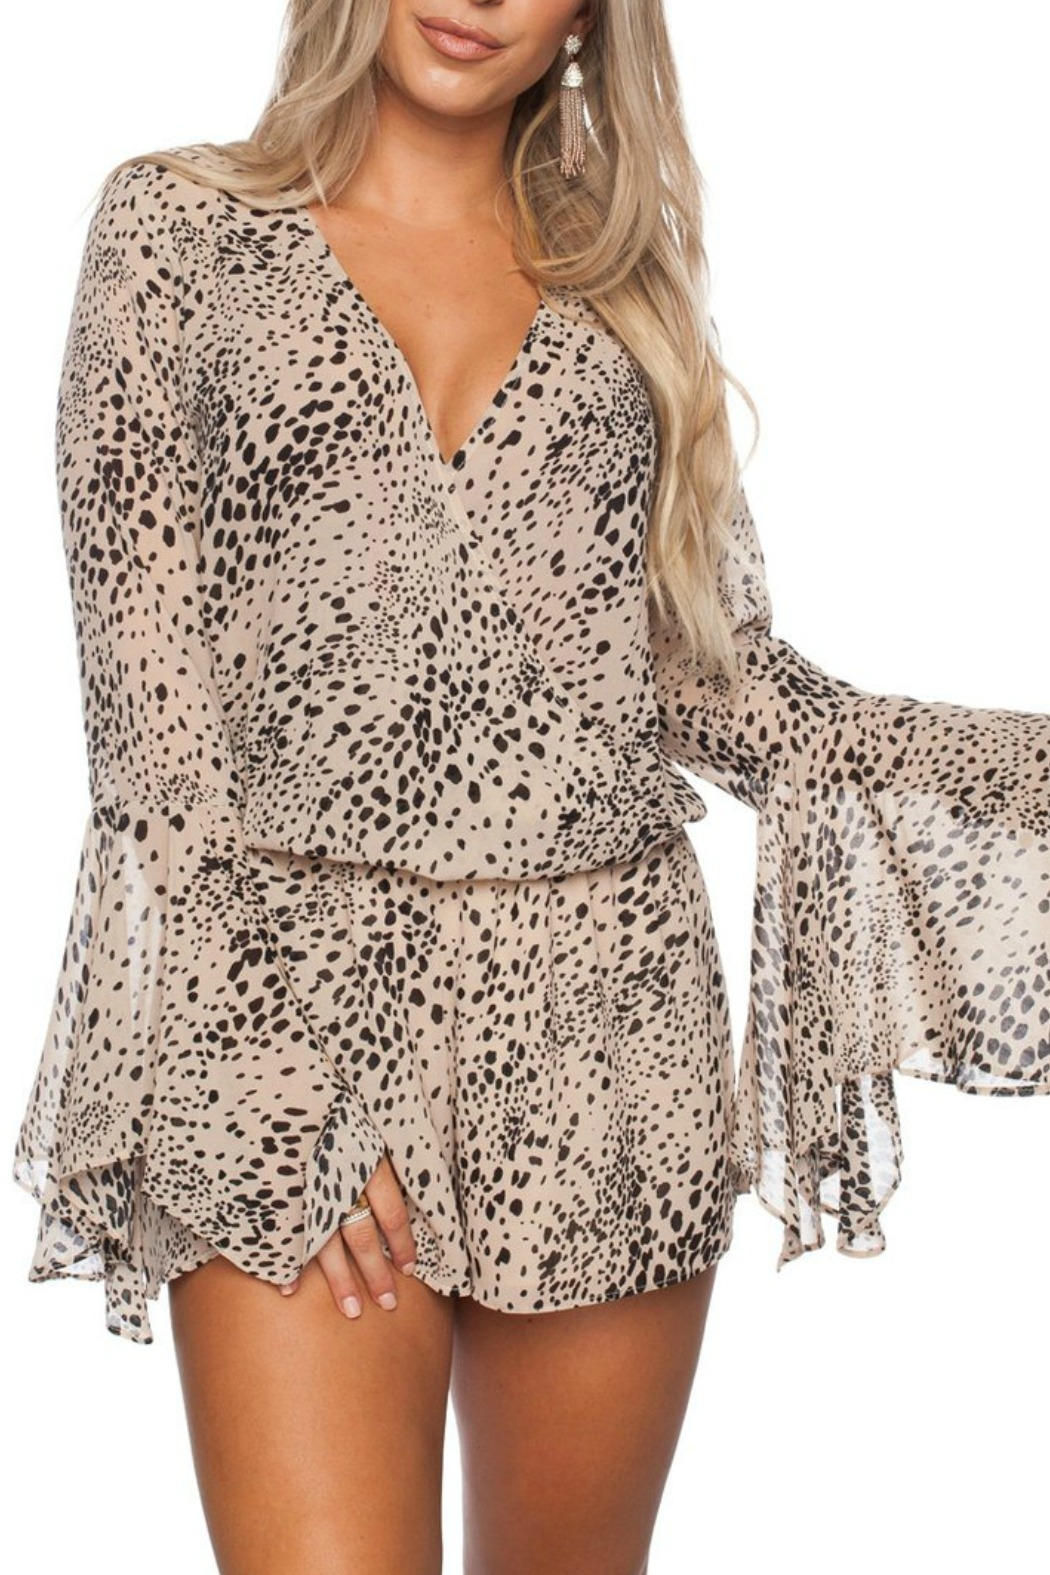 Buddy Love Printed Spencer Romper - Front Cropped Image